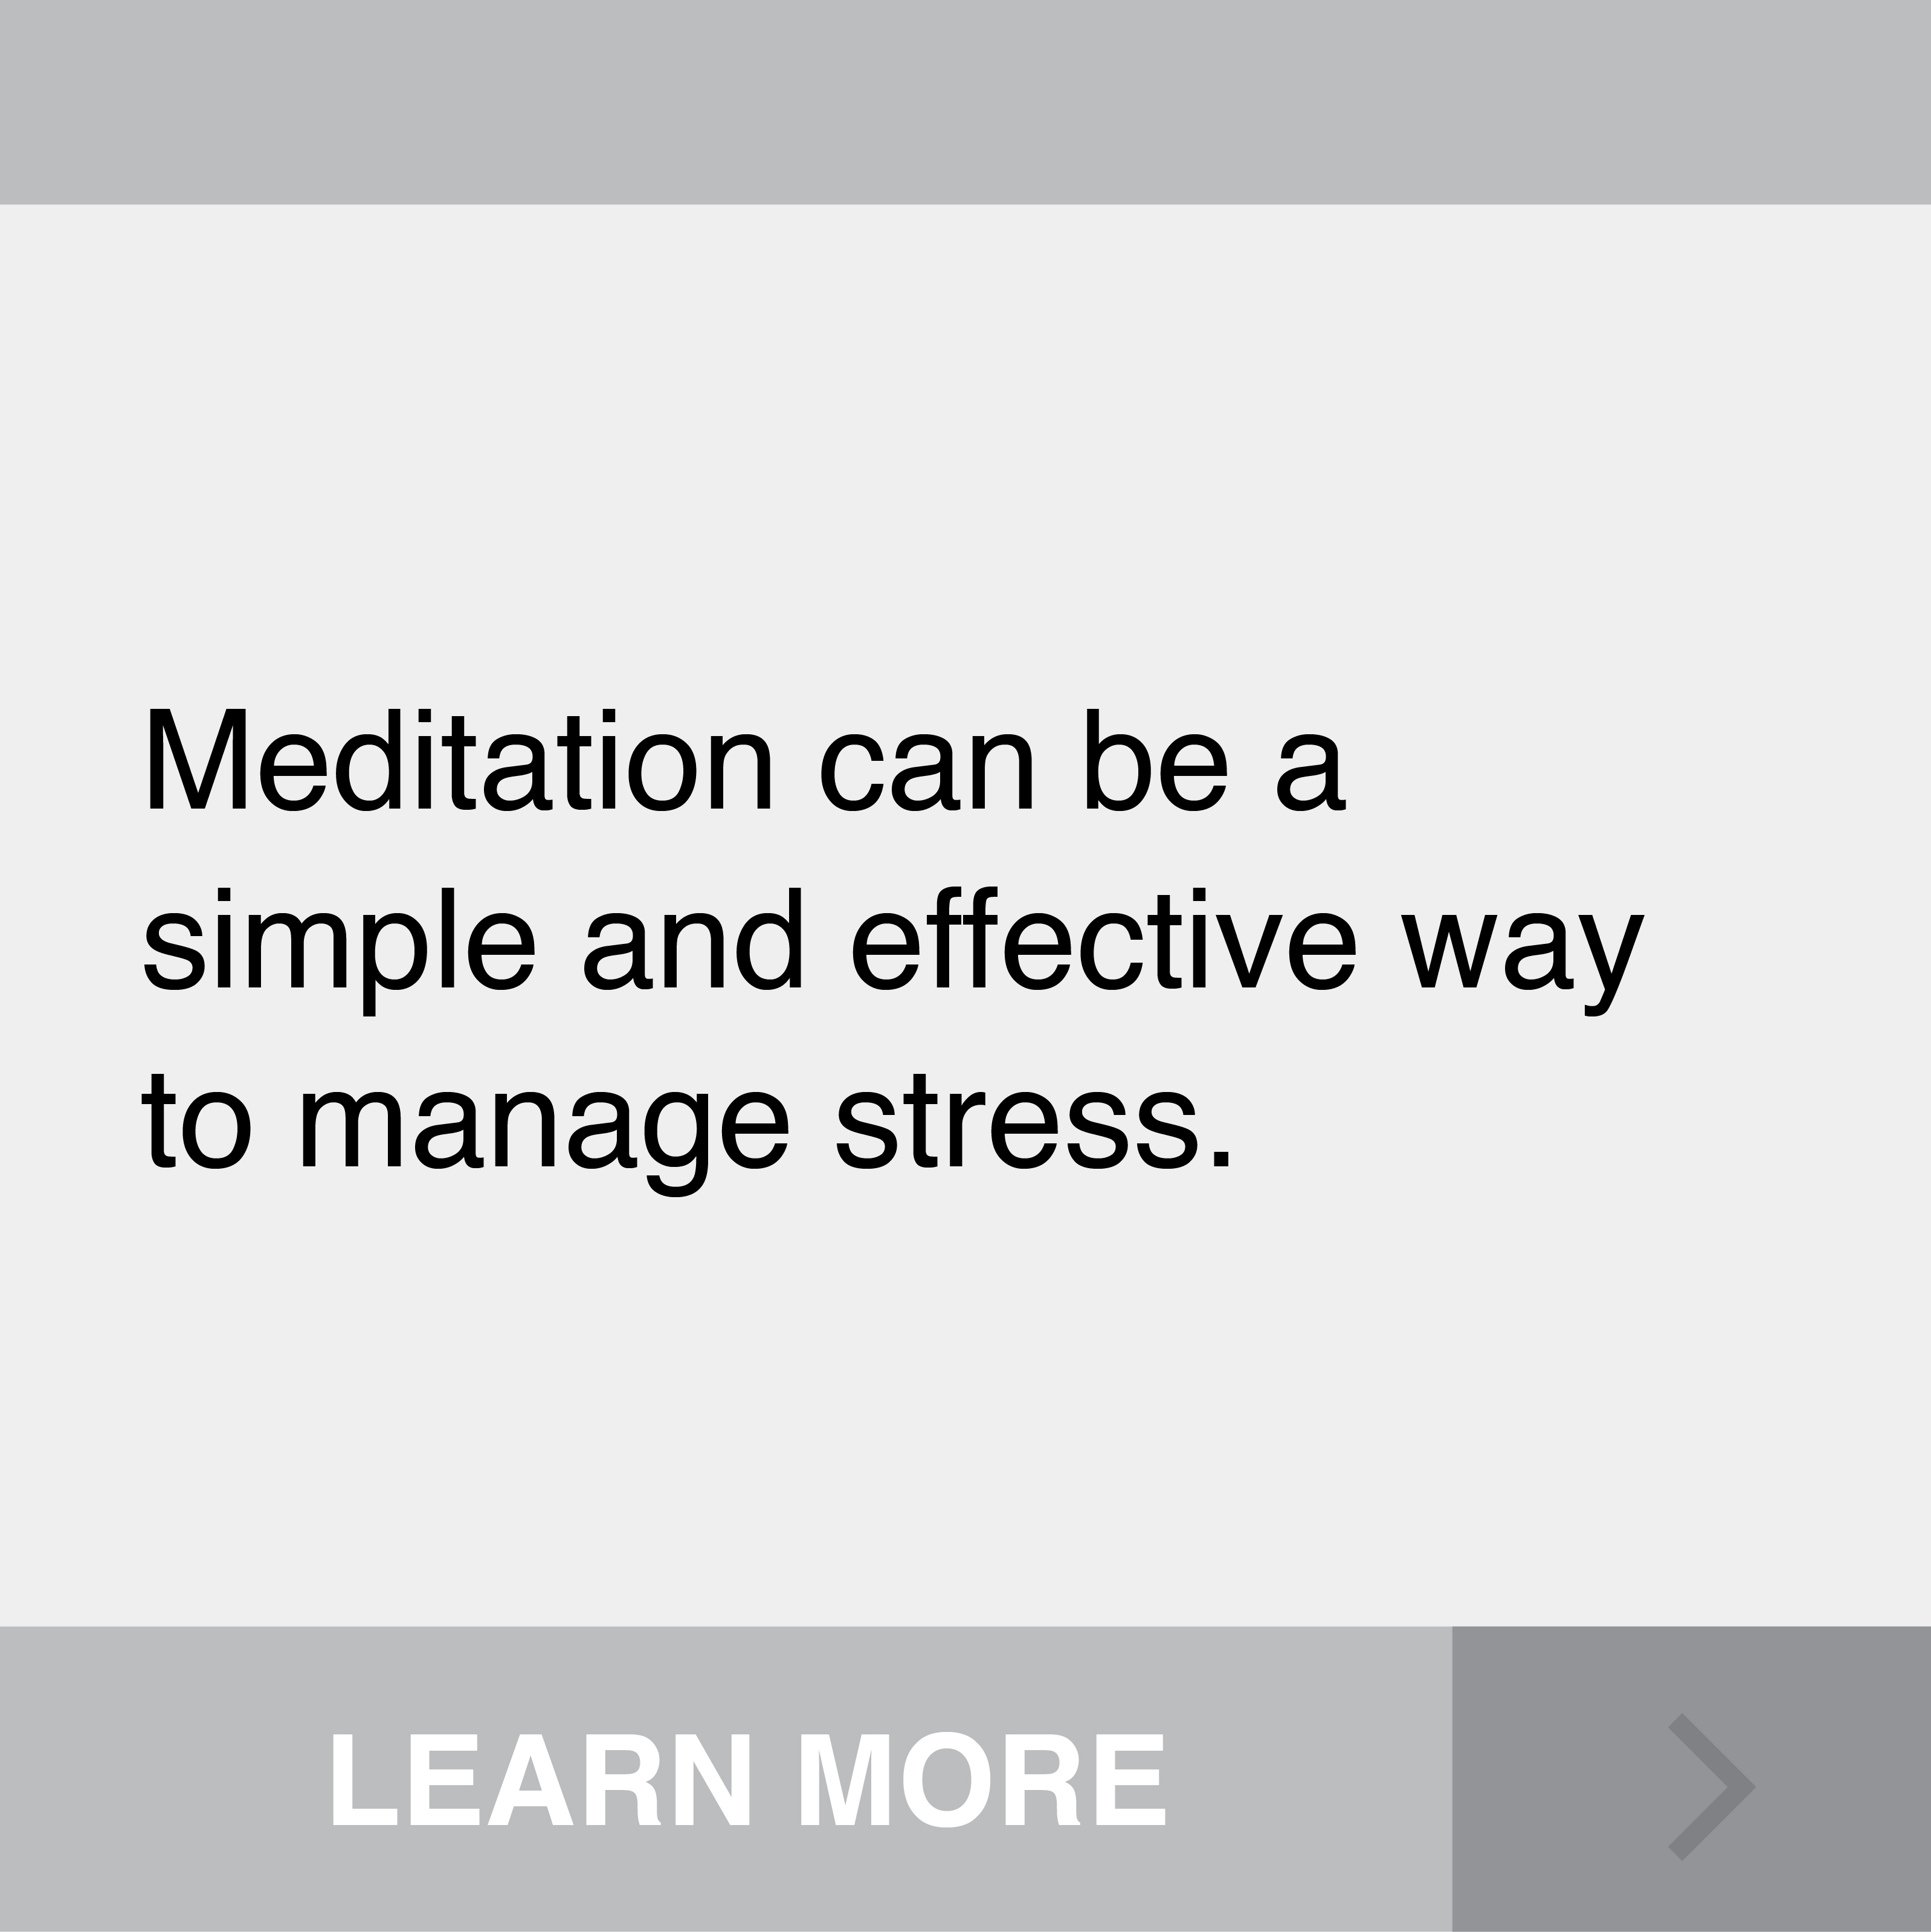 Meditation can be a simple and effective way to manage stress. Click to Learn More.